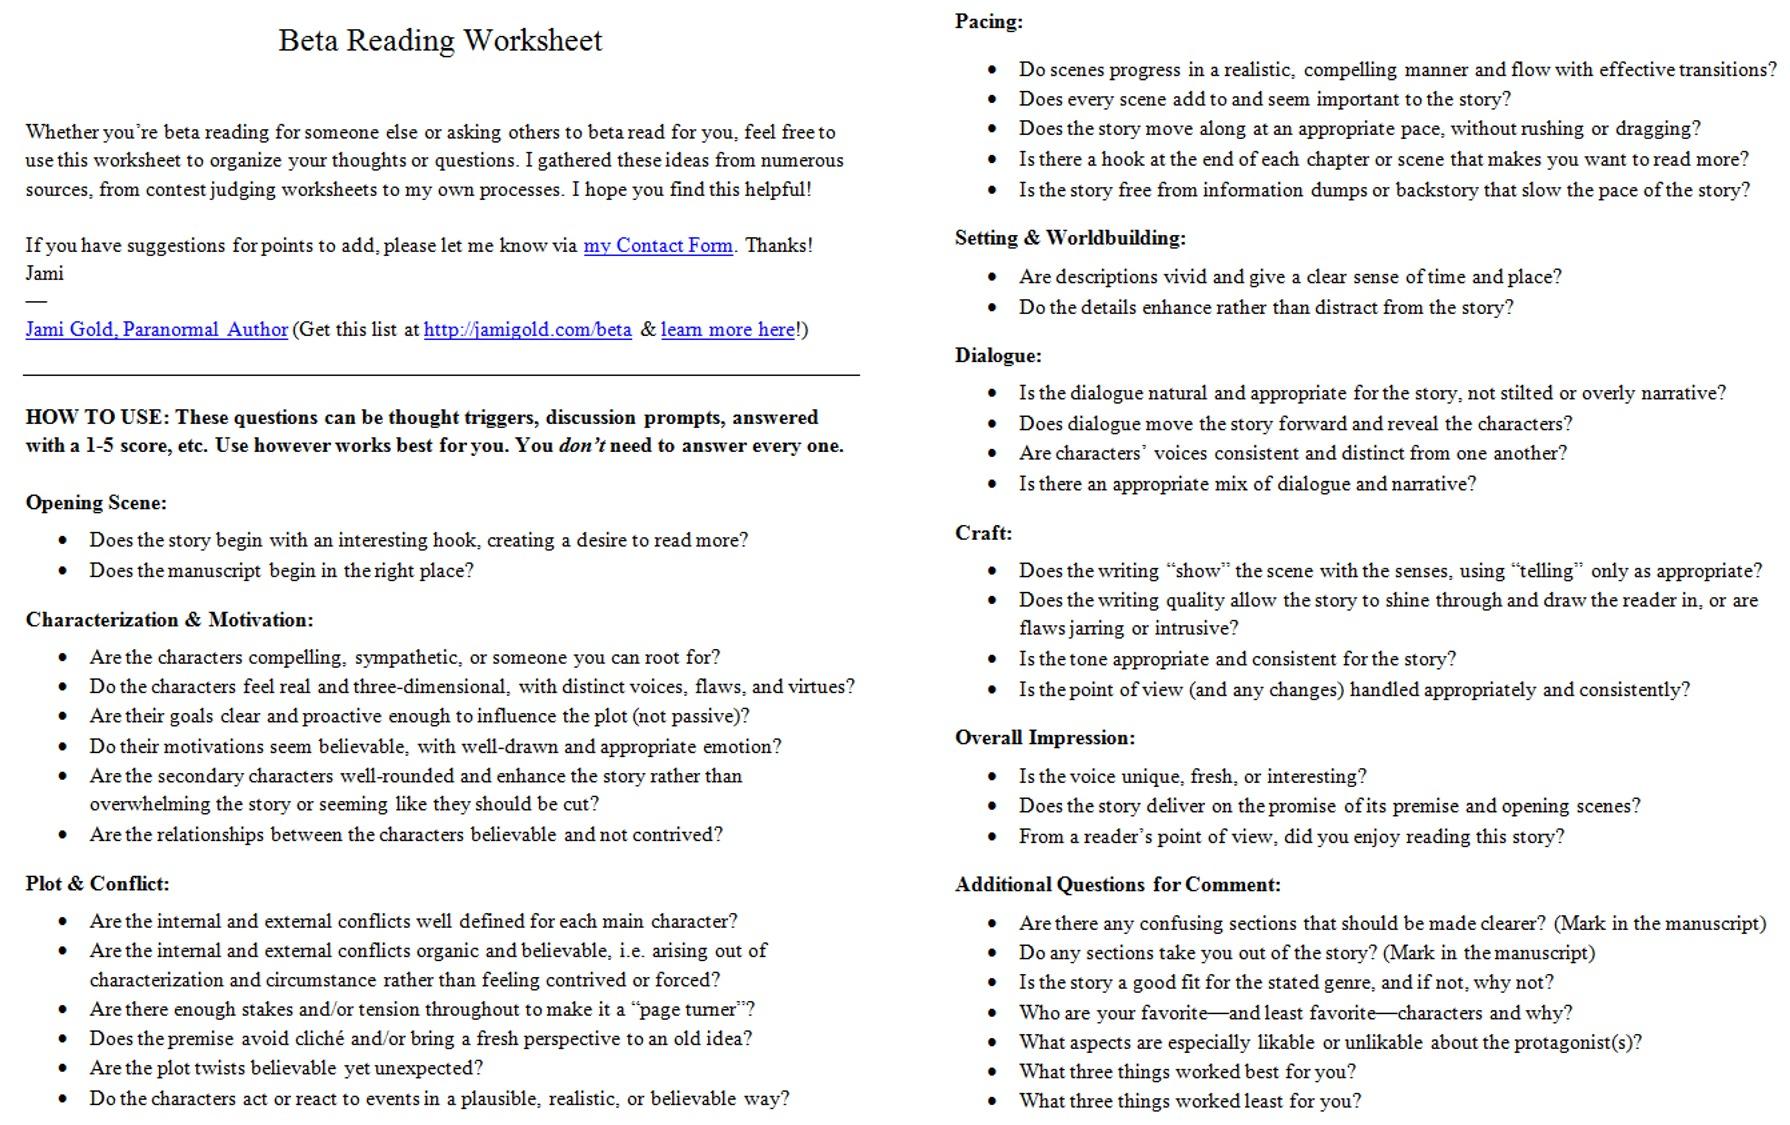 Weirdmailus  Winsome Worksheets For Writers  Jami Gold Paranormal Author With Interesting Screen Shot Of The Twopage Beta Reading Worksheet With Cool Hebrew Reading Worksheets Also Free Printable Worksheets For Nd Grade Reading Comprehension In Addition Letter A B C Worksheets And Comma Rules Worksheets As Well As Daniel Boone Worksheets Additionally High School Study Skills Worksheets From Jamigoldcom With Weirdmailus  Interesting Worksheets For Writers  Jami Gold Paranormal Author With Cool Screen Shot Of The Twopage Beta Reading Worksheet And Winsome Hebrew Reading Worksheets Also Free Printable Worksheets For Nd Grade Reading Comprehension In Addition Letter A B C Worksheets From Jamigoldcom